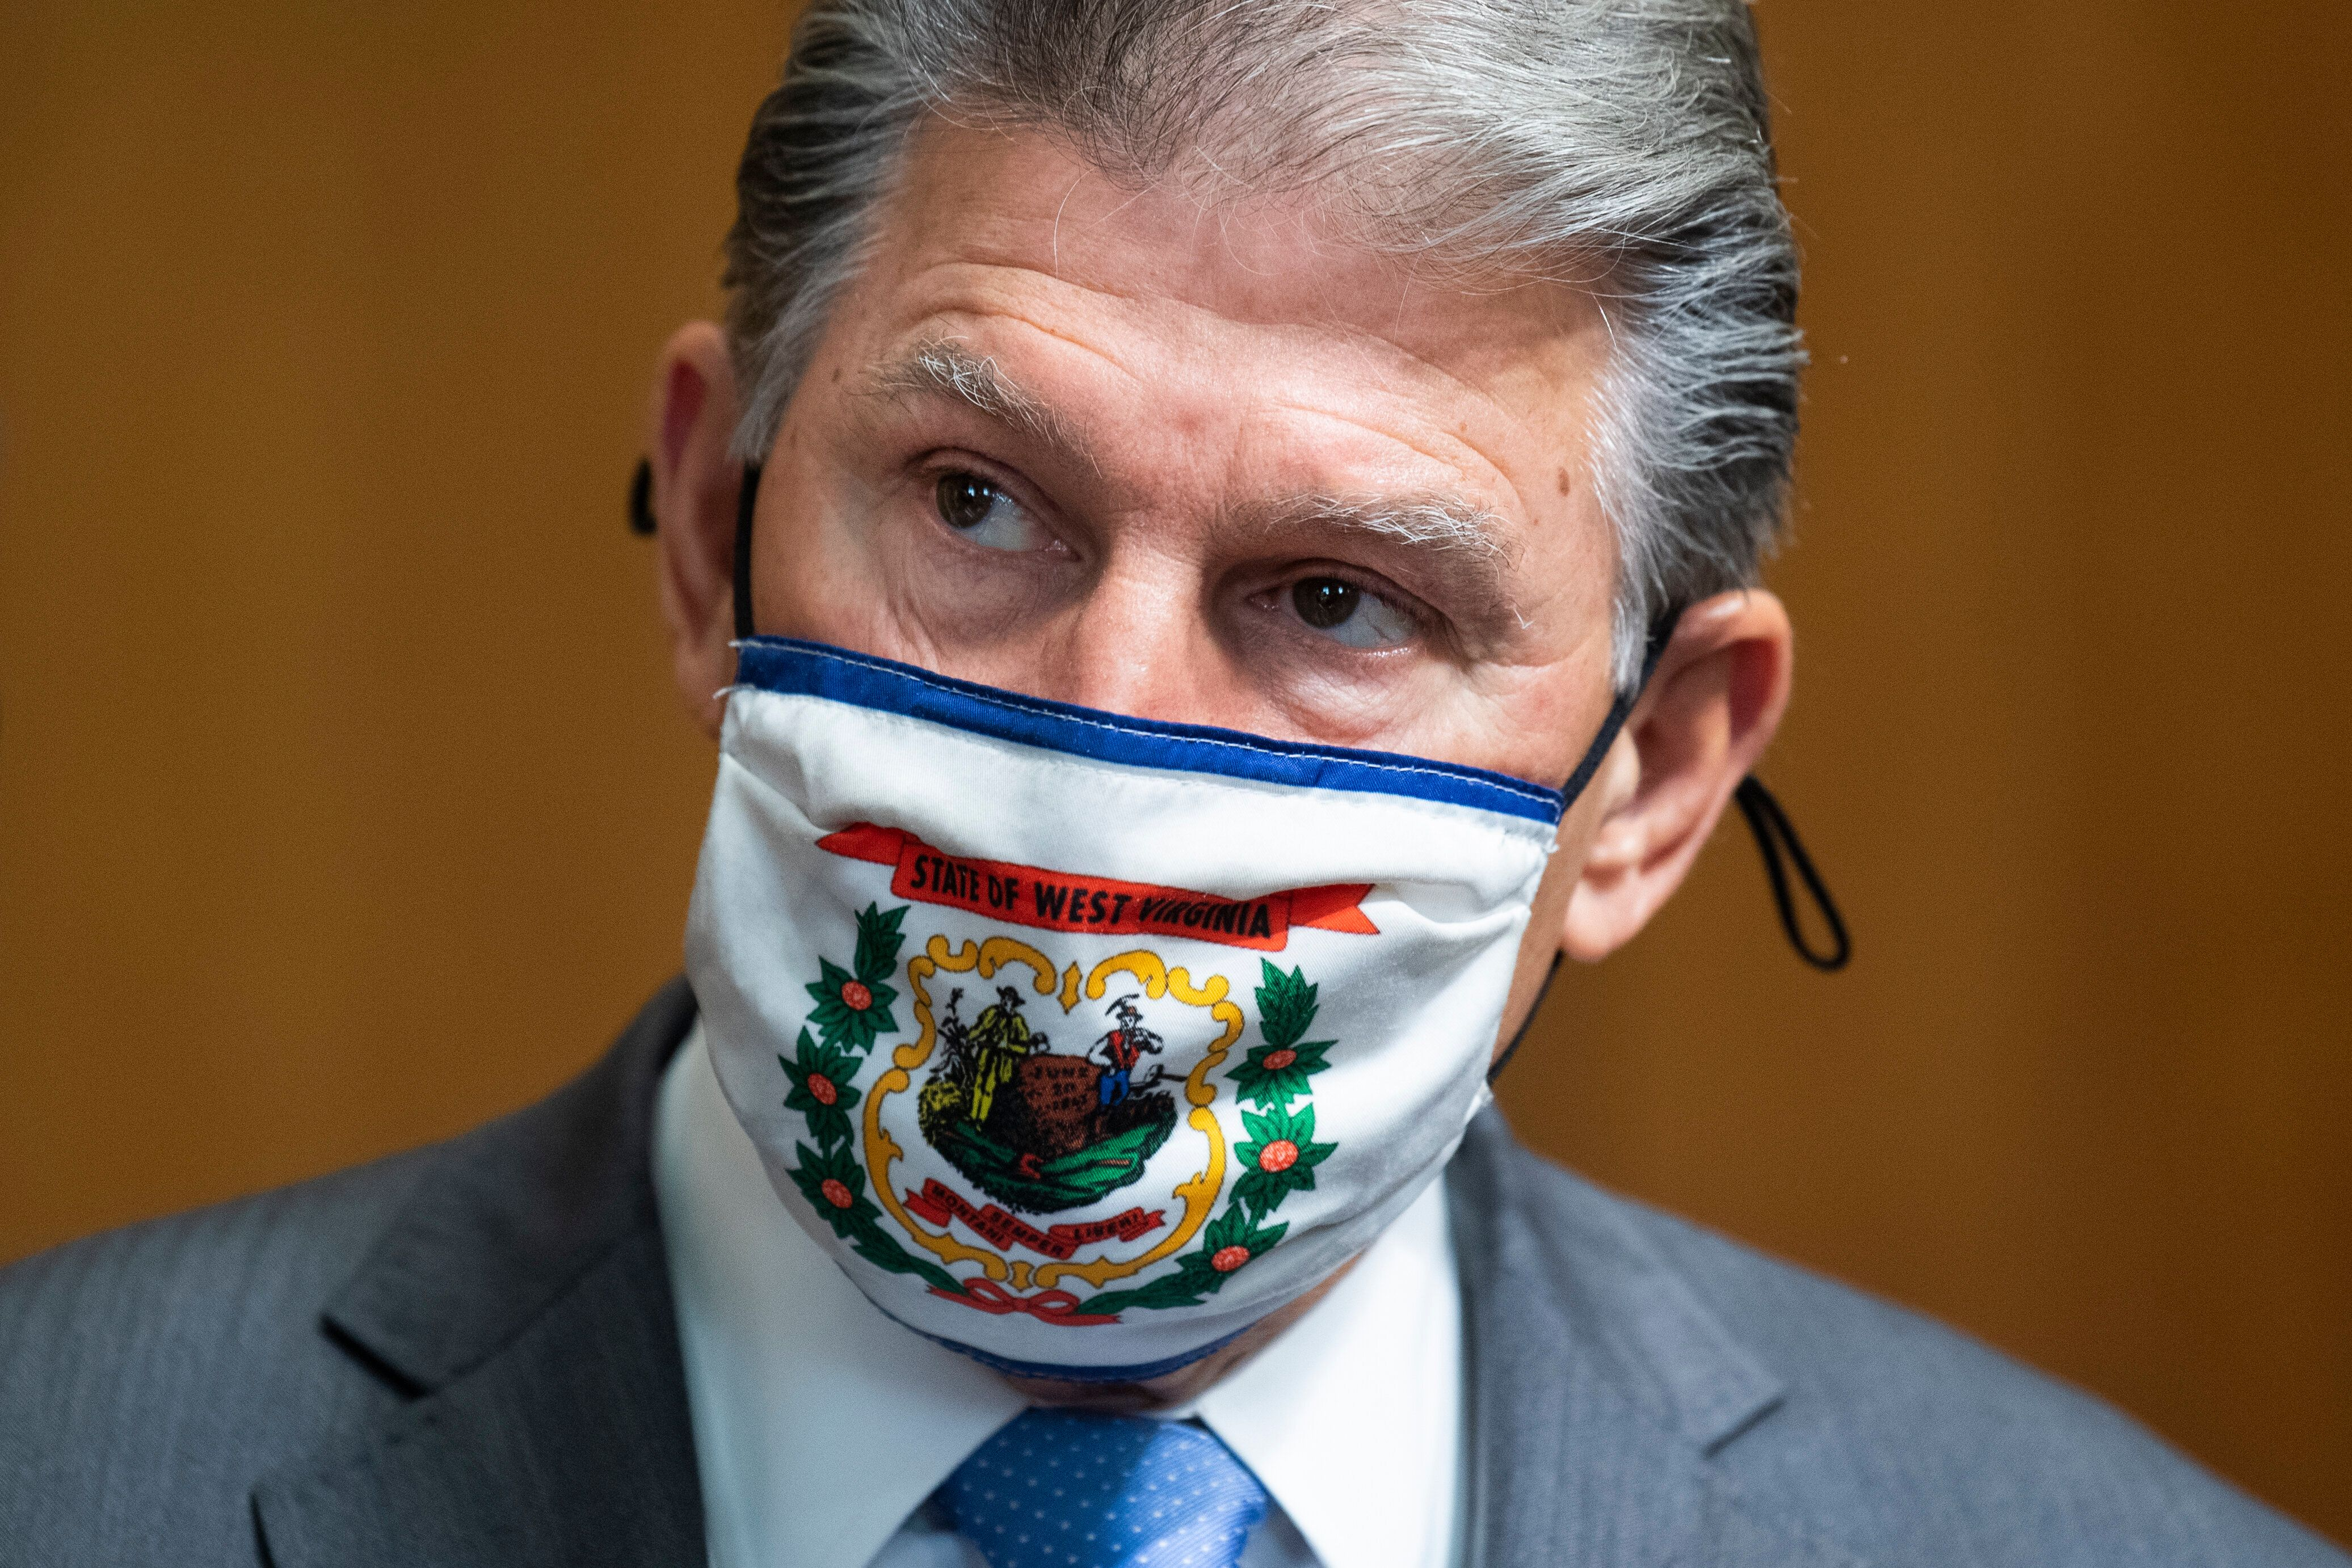 Sen. Joe Manchin (D-W.Va.) wants to do something bipartisan on voting rights, but he can't find more than one Republican to s